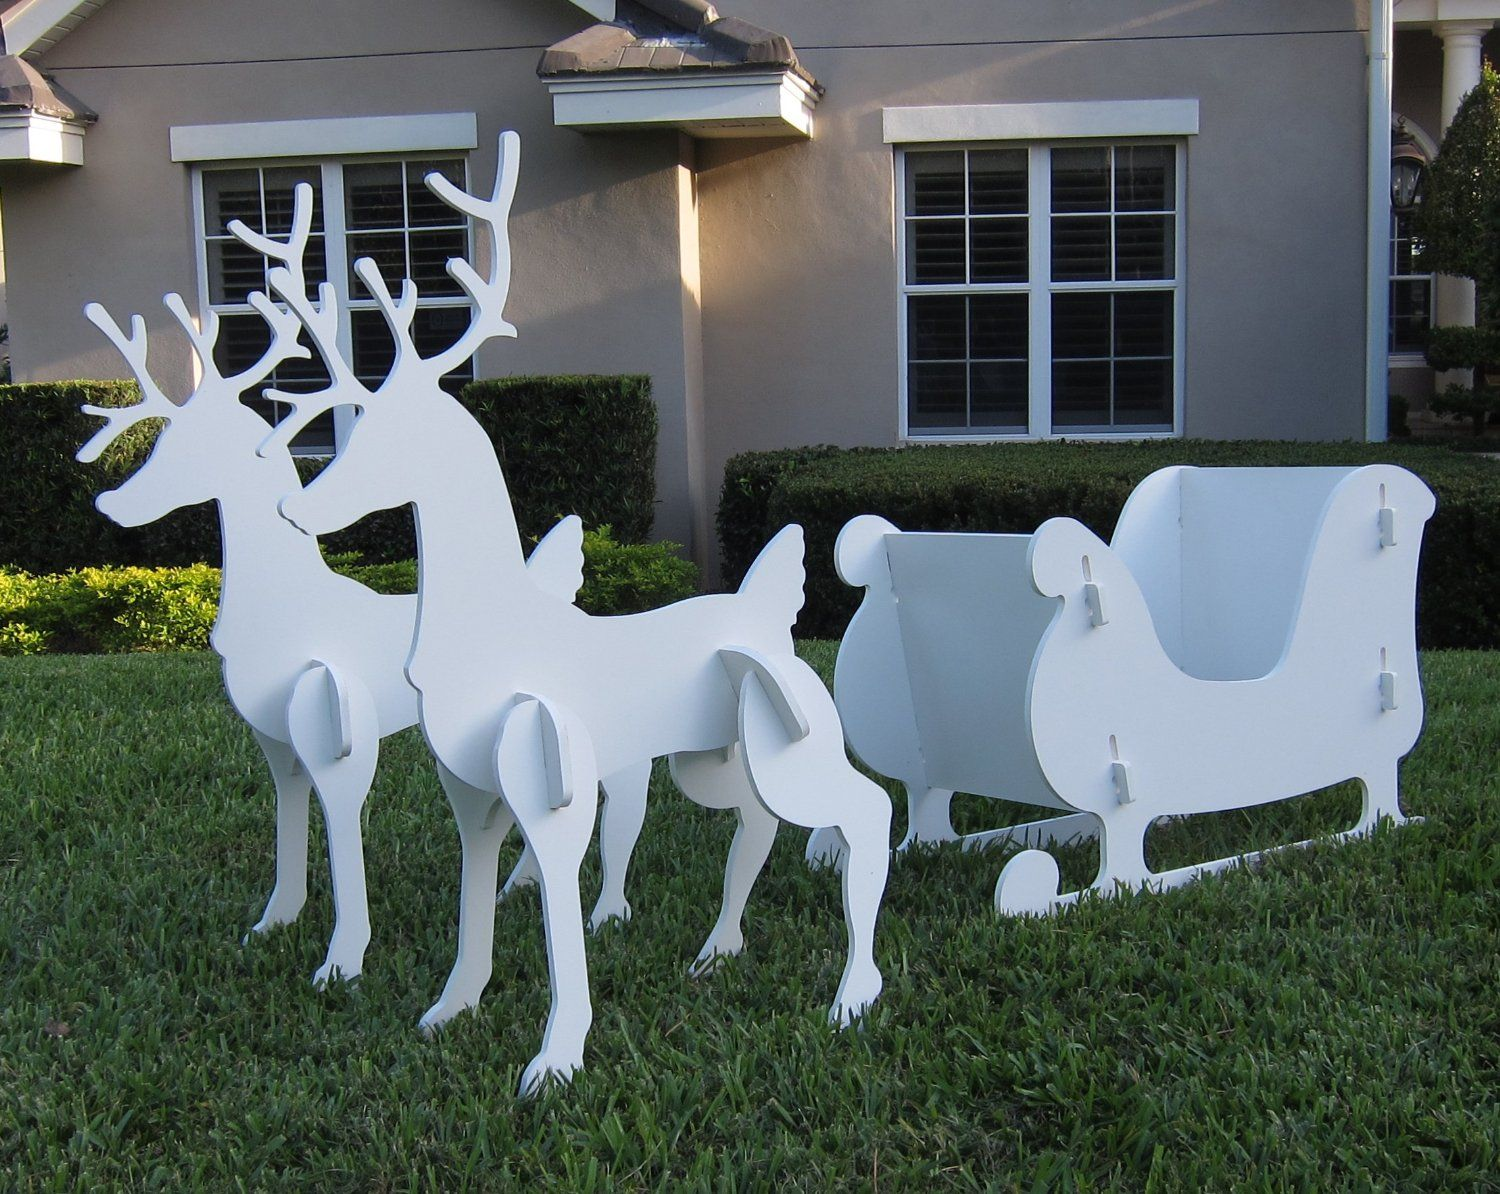 Santa sleigh reindeer outdoor yard decoration new for Outdoor xmas decorations